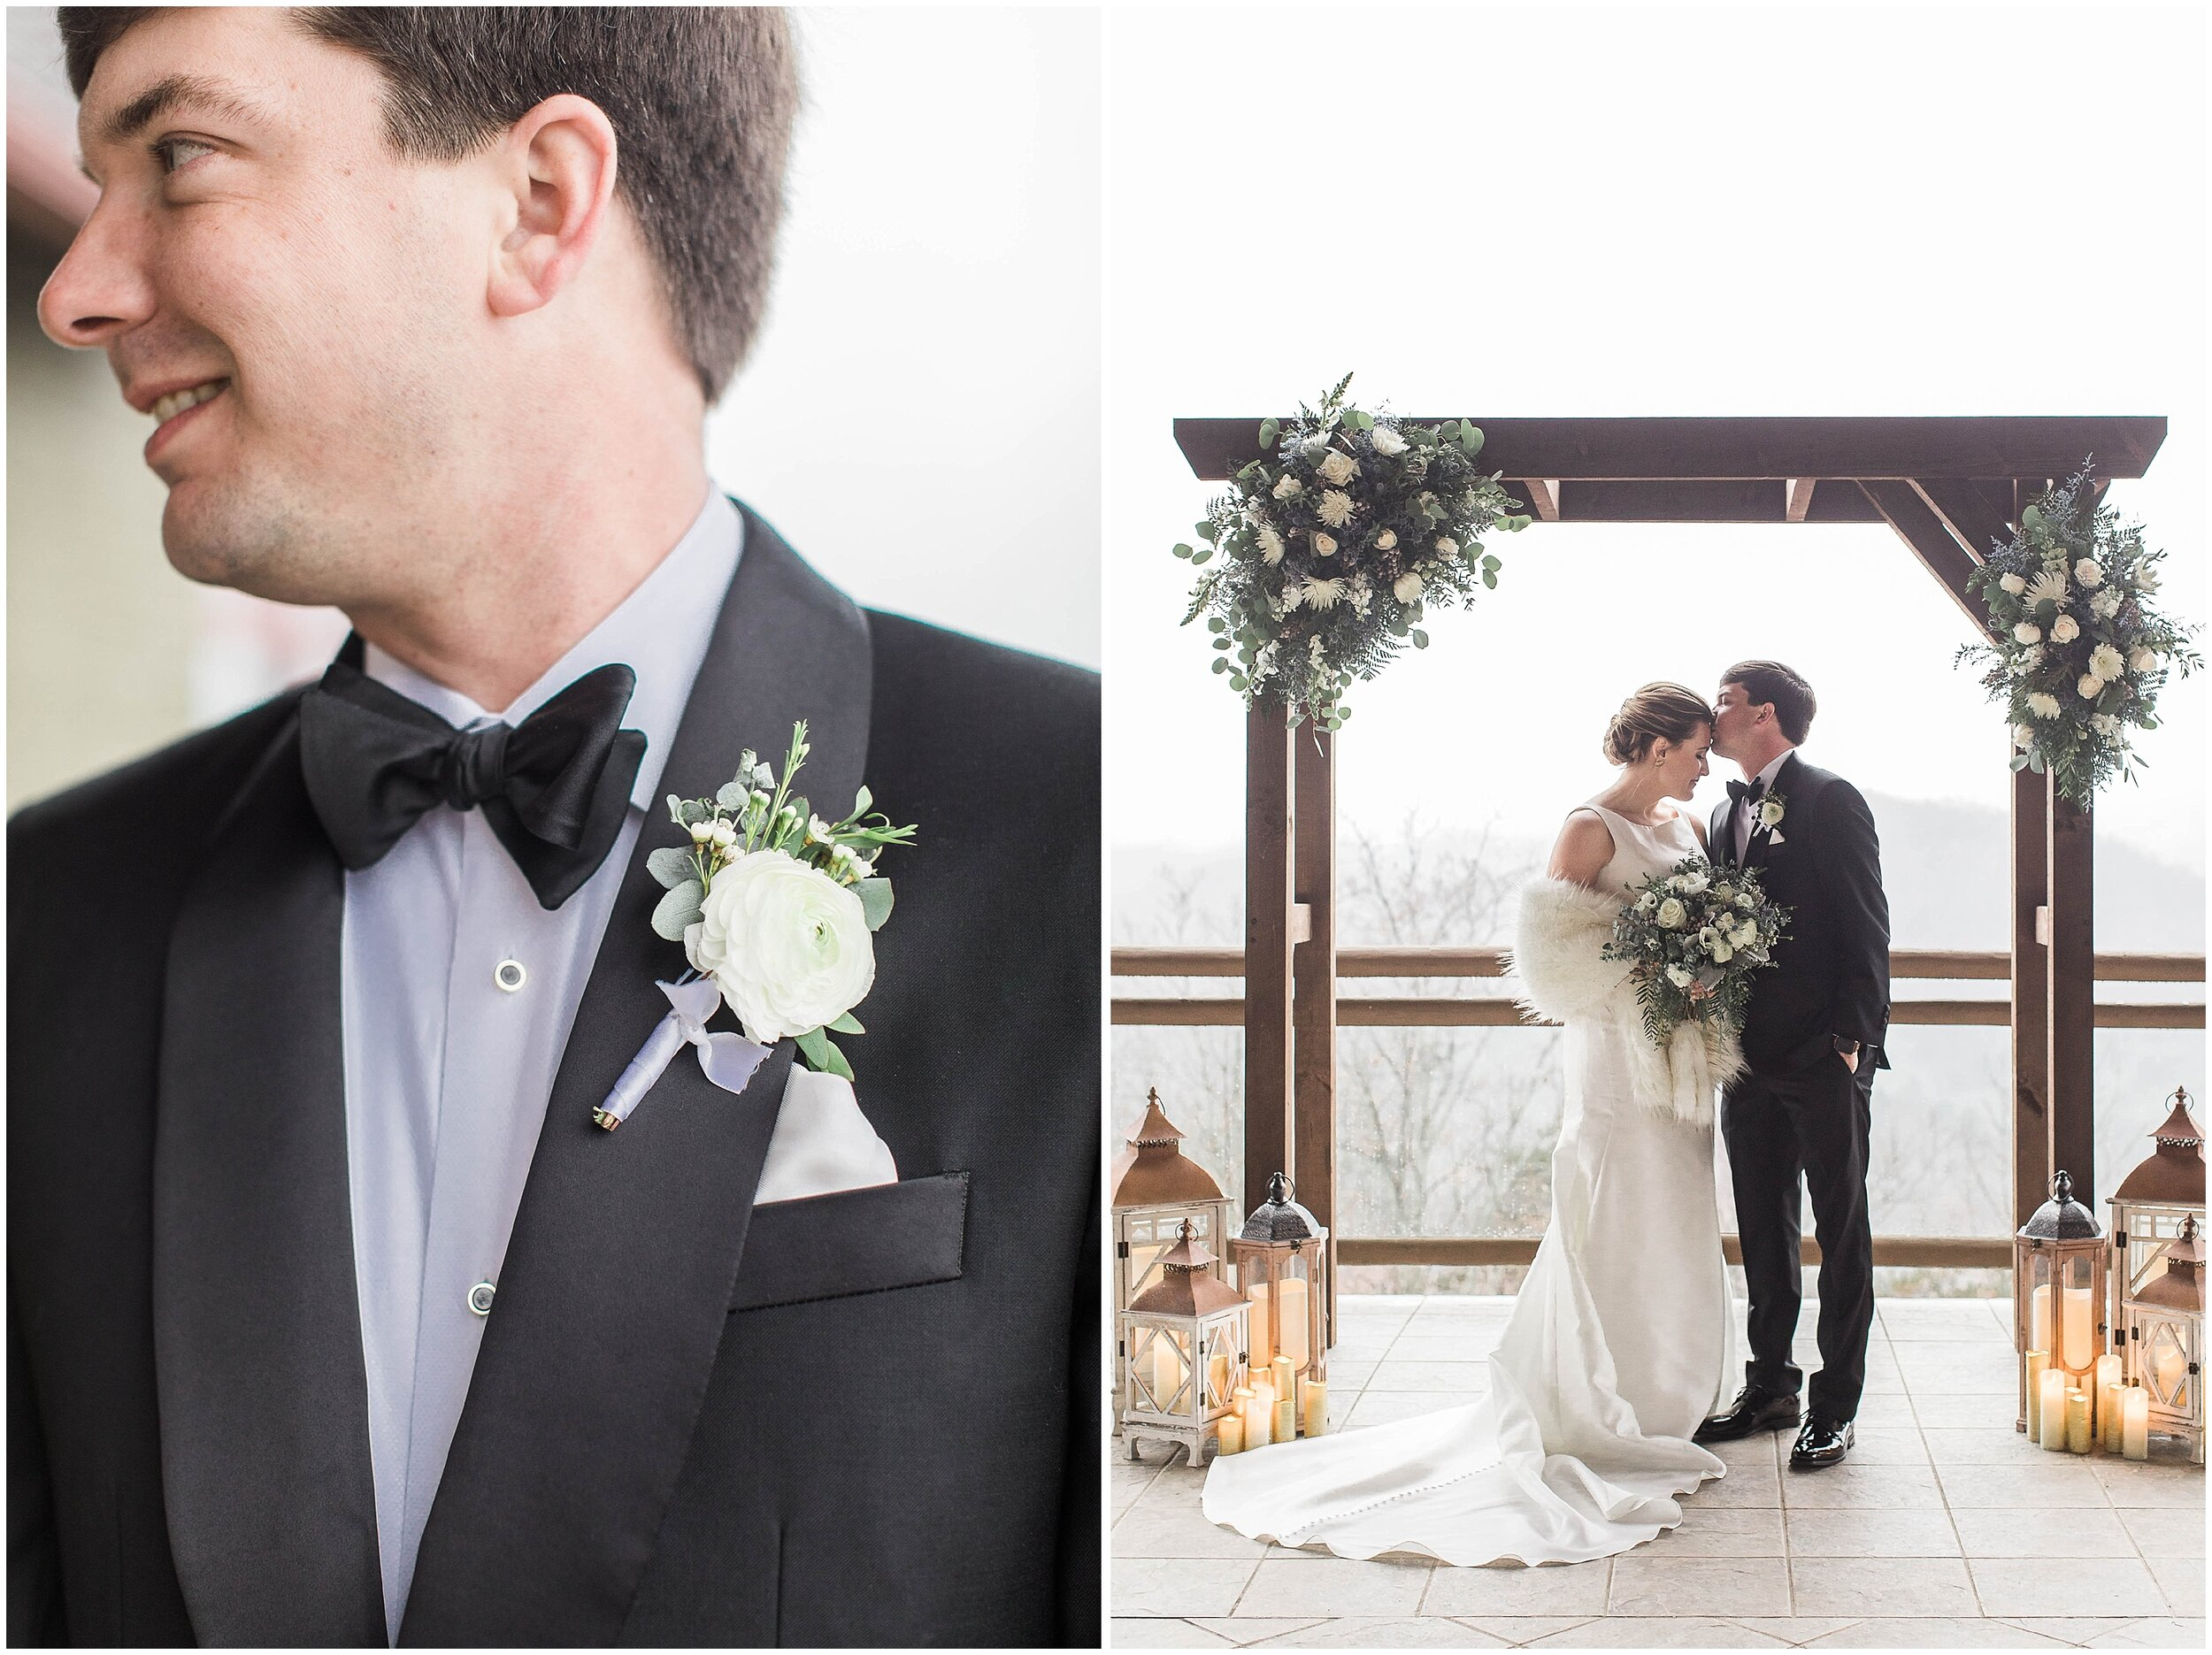 the planning experience - We cover a wide range of needs for your wedding day. Whether you just need help with getting everything in place on the day or you need someone to help you choose your vendors and rental items, we have a service for you.